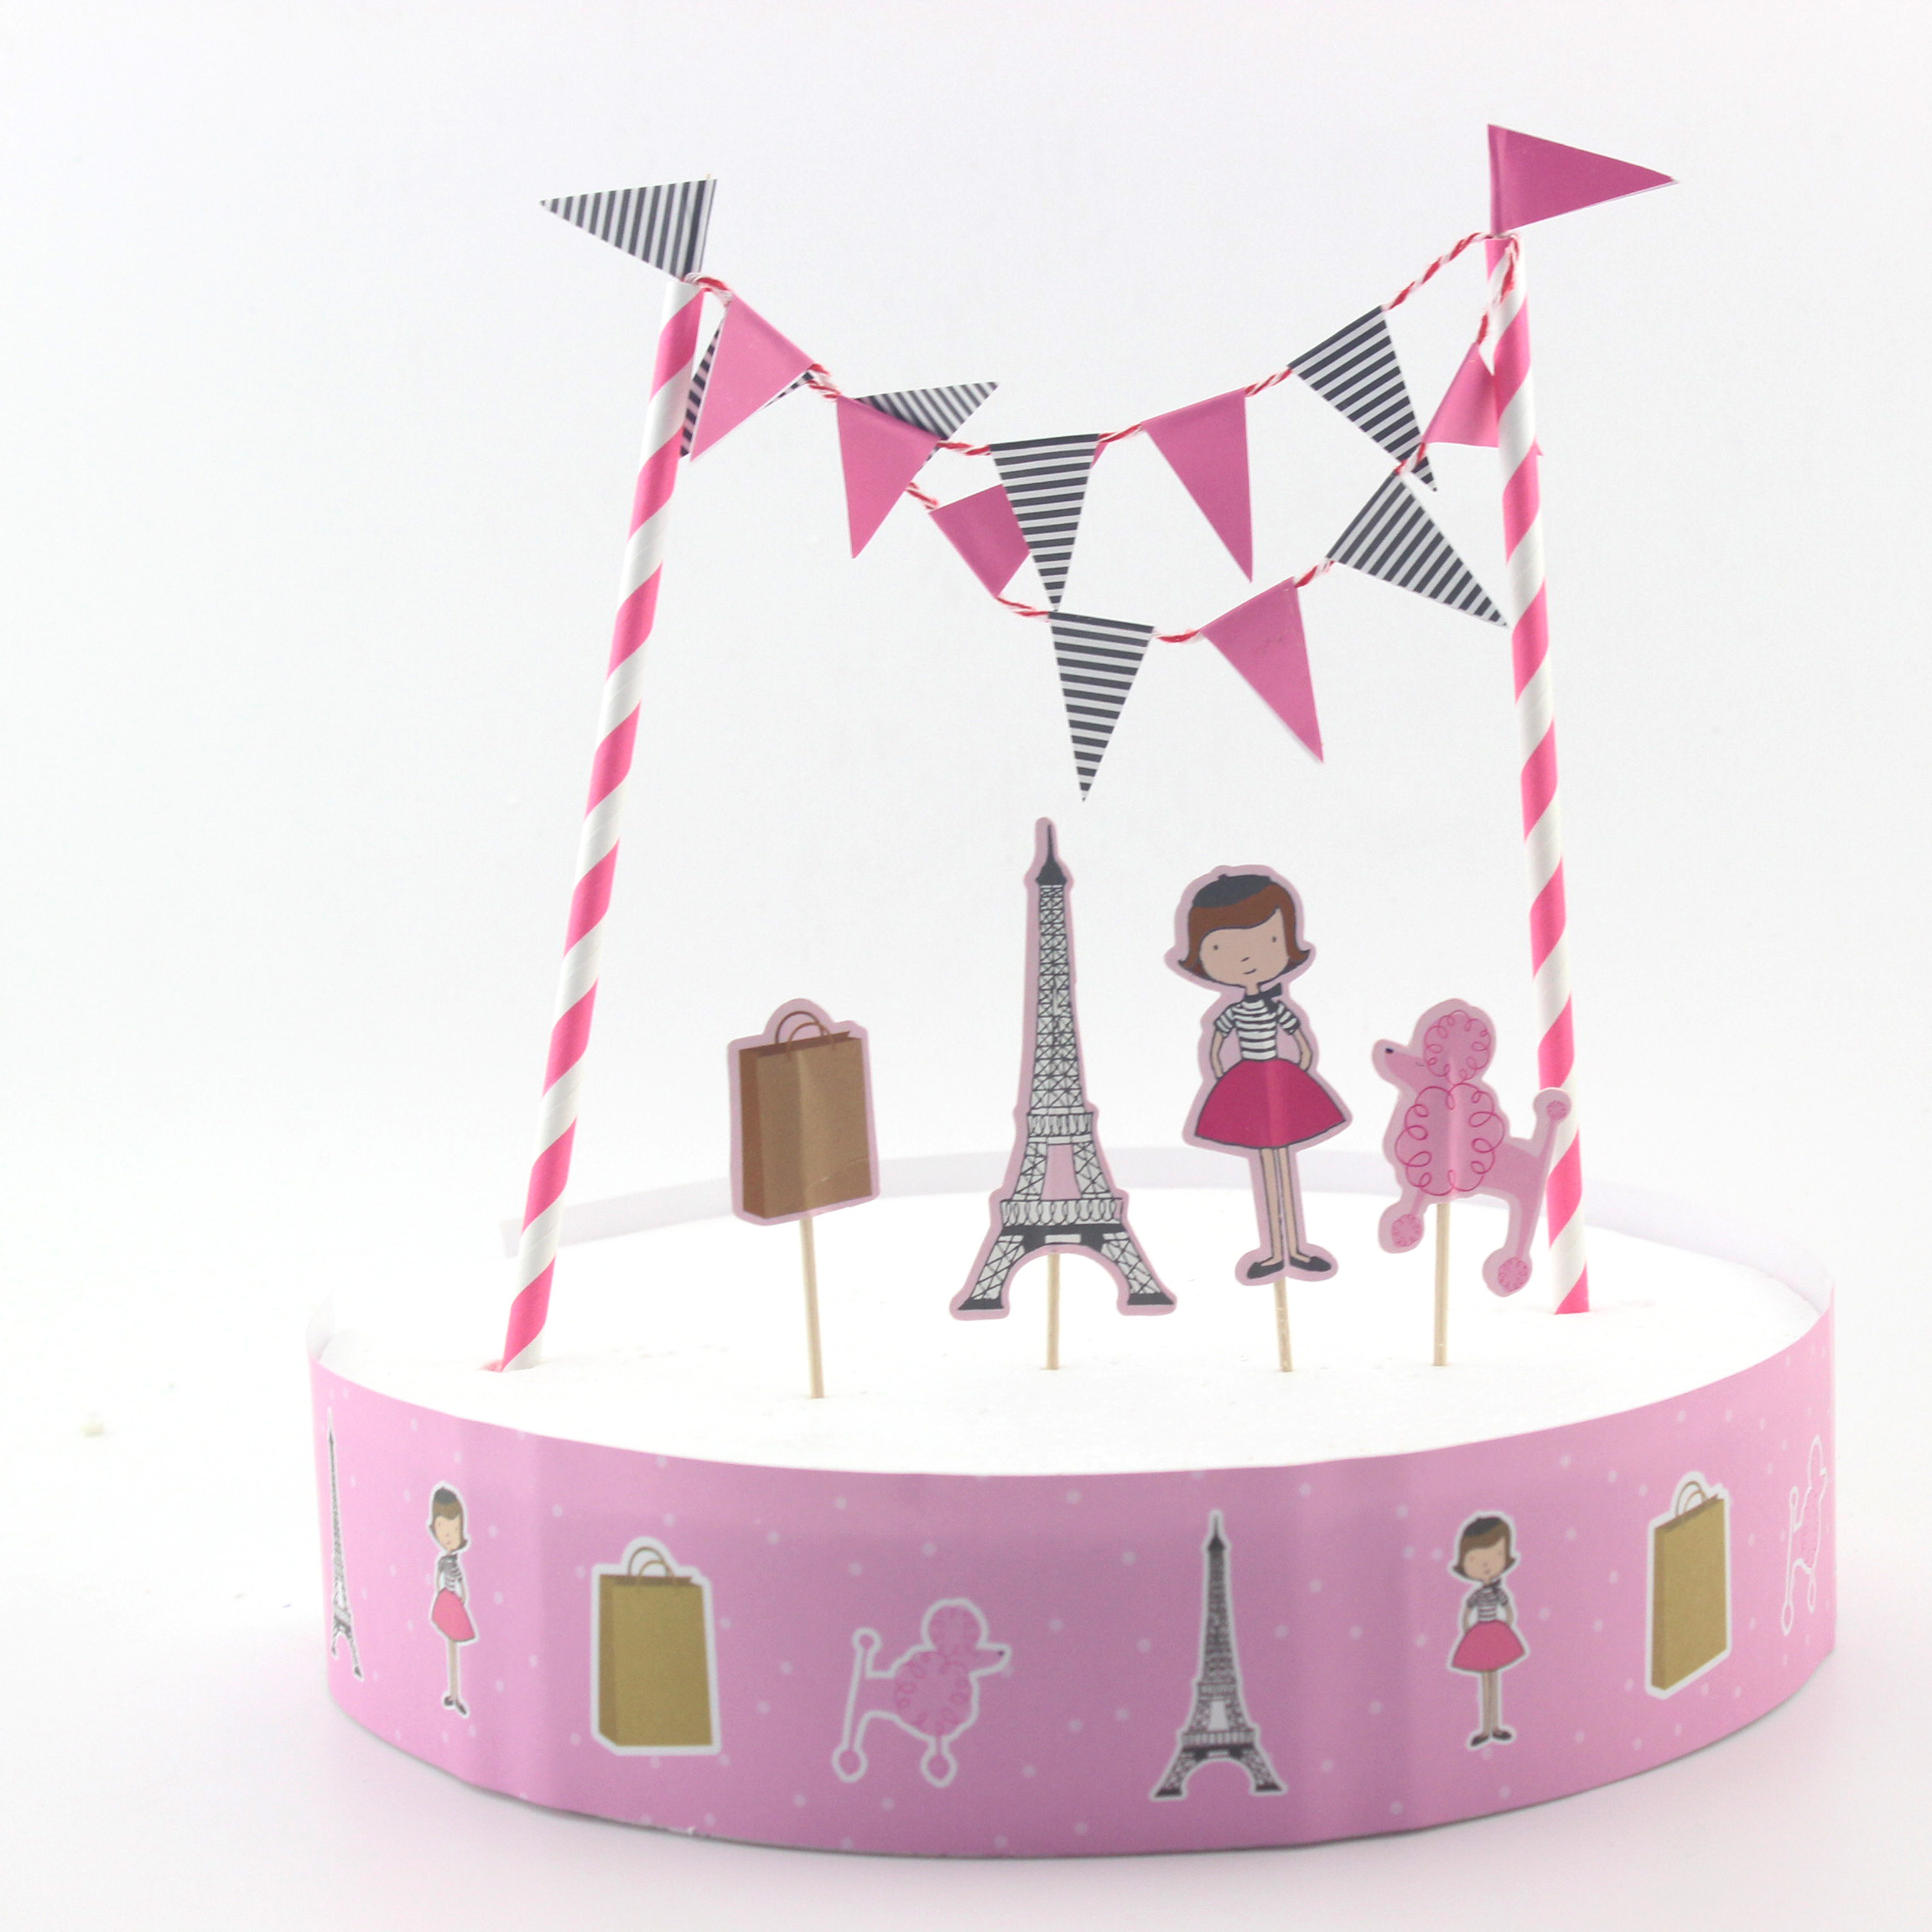 DIY Girls Favor Eiffel Tower Happy Birthday Cake Decoration with cake wrapper flag strew set